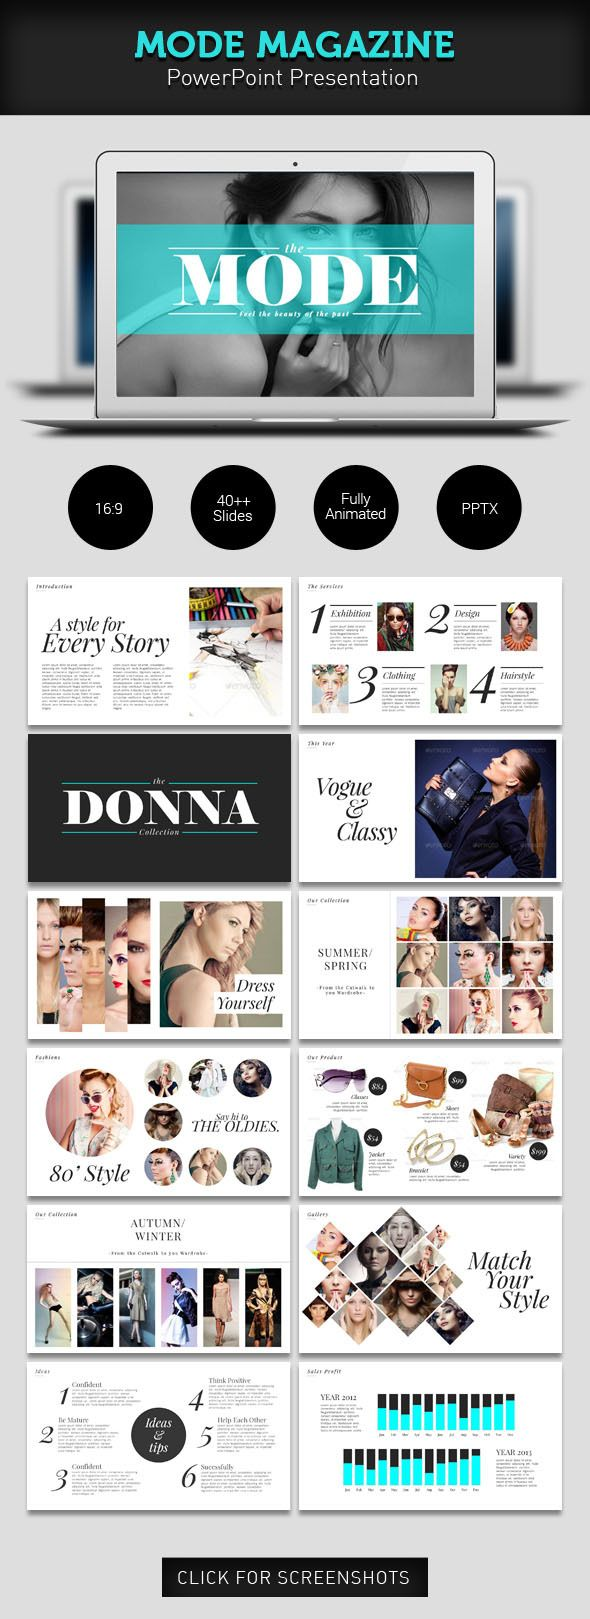 mode magazine powerpoint | ppt design, powerpoint presentation, Powerpoint templates